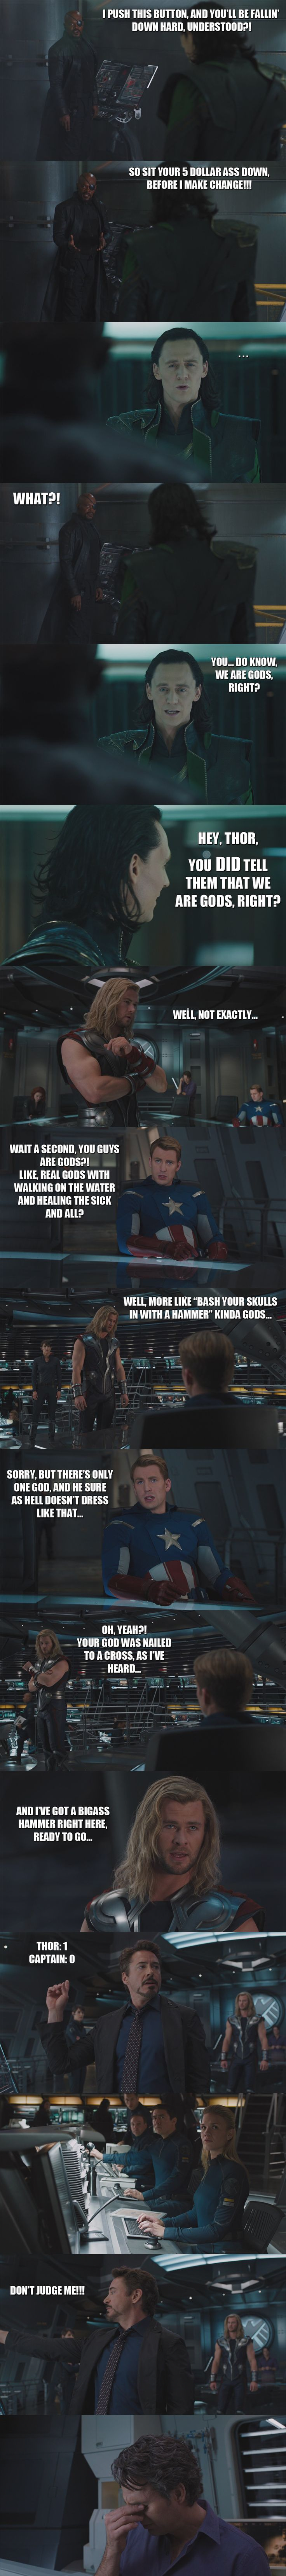 Thor: 1  Captain: 0  The Avengers - Gods: I by yourparodies.deviantart.com